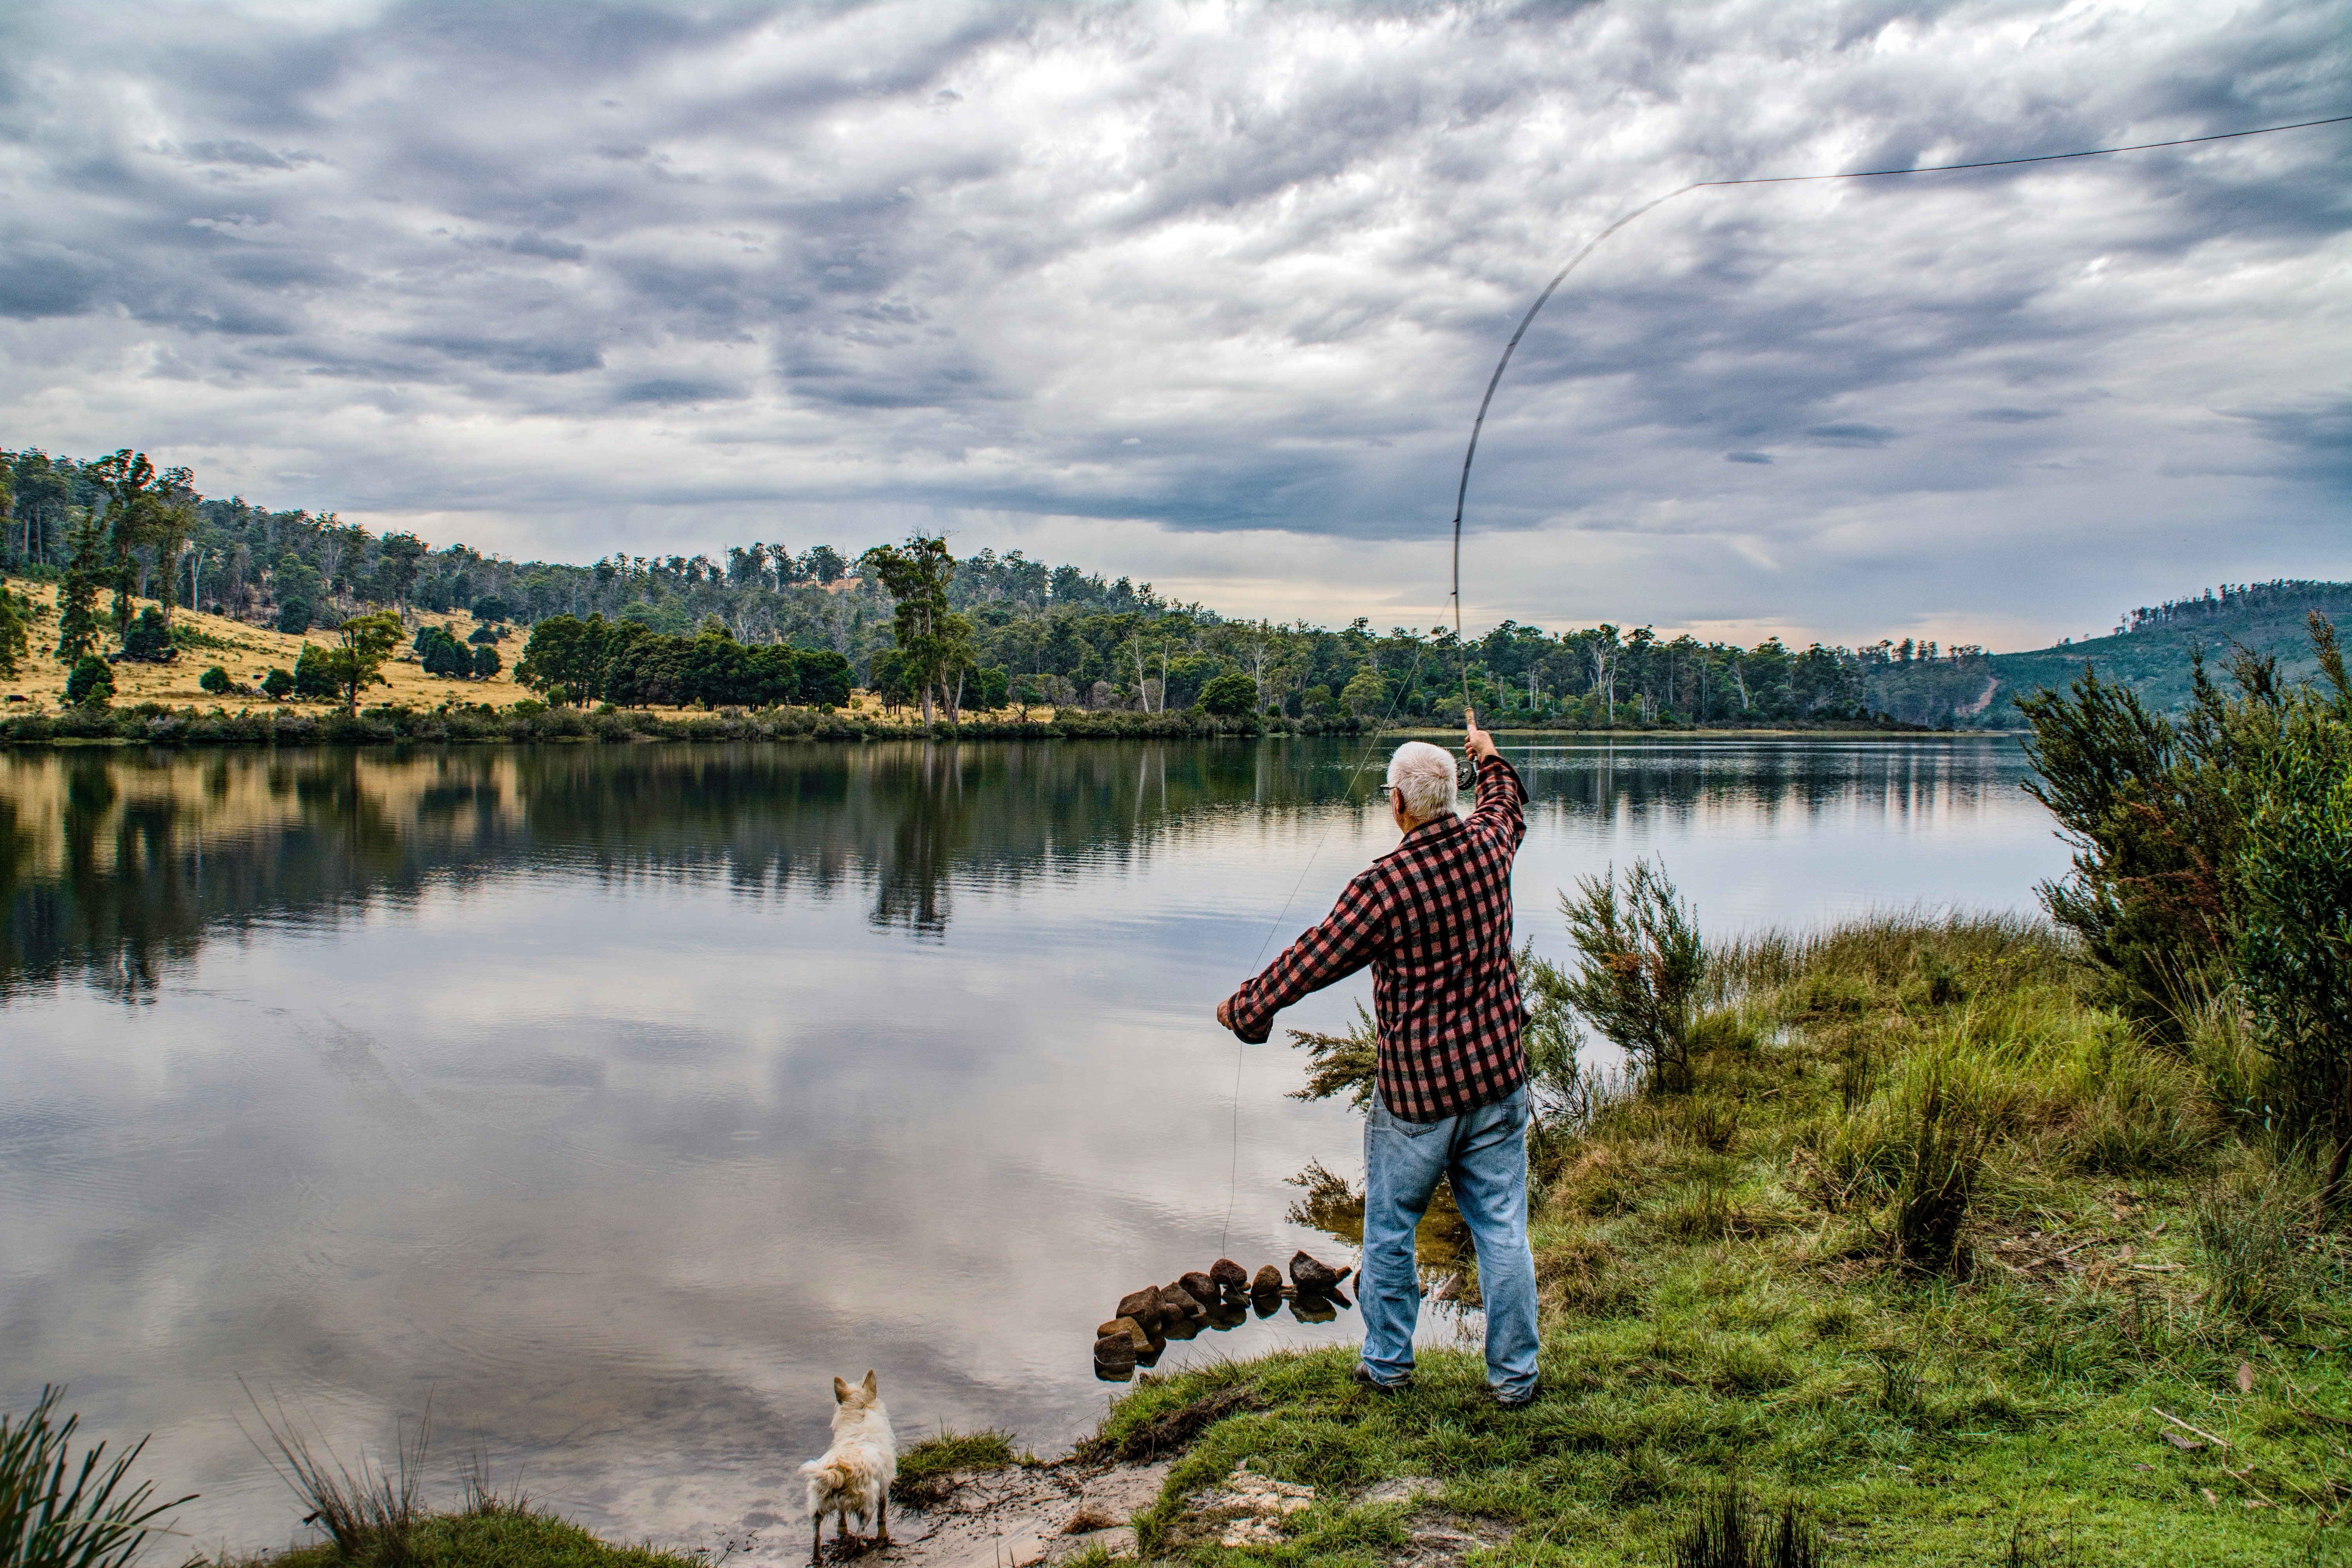 An in-depth review of the best G. Loomis fly rods available in 2019.